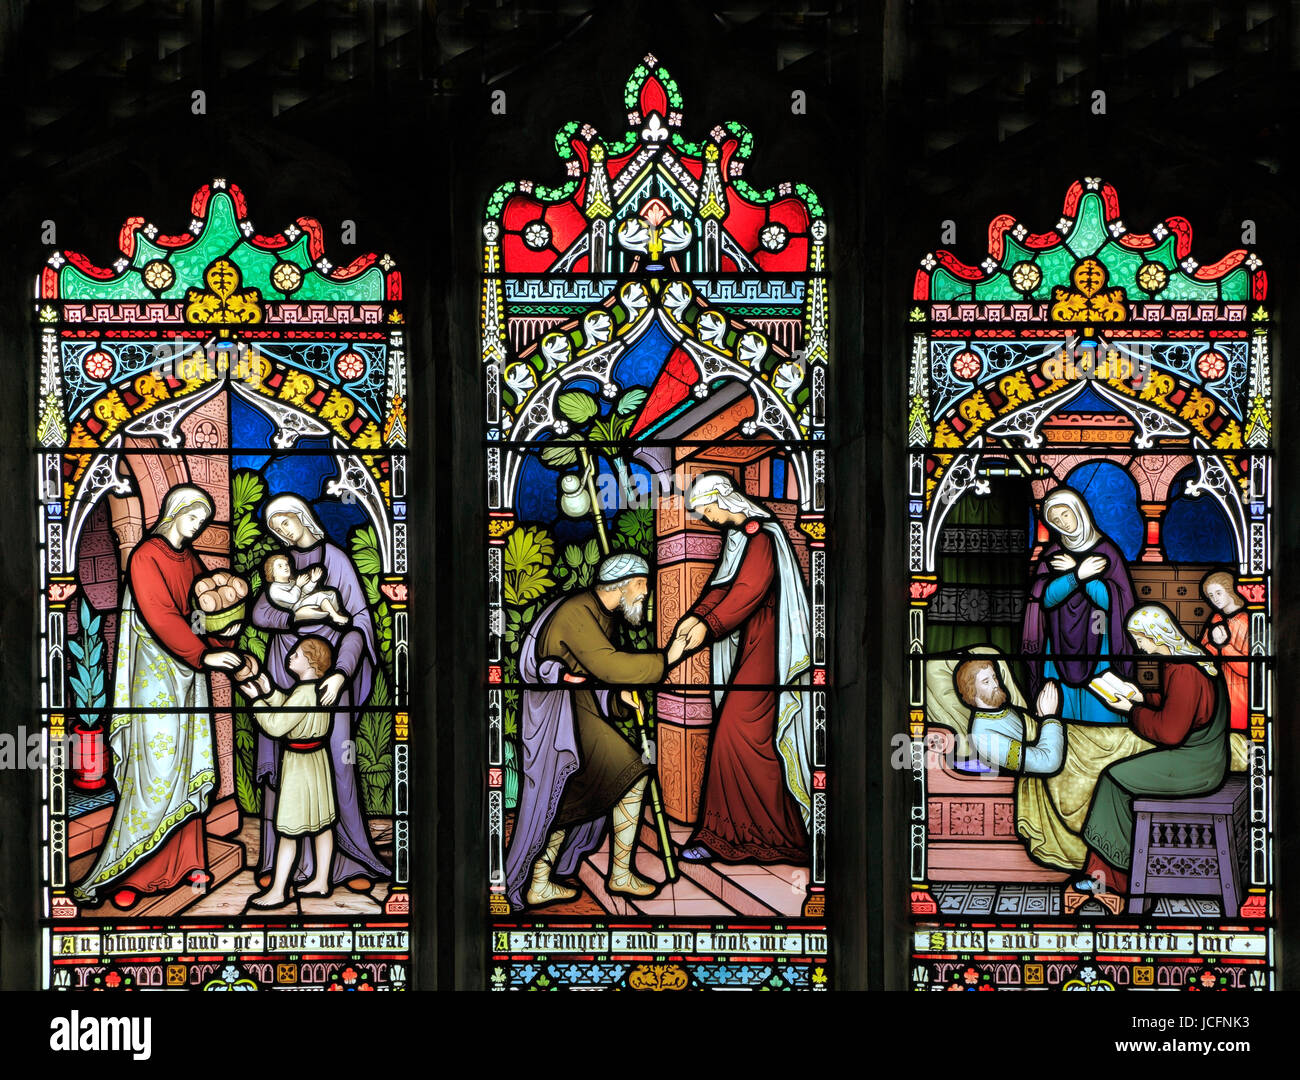 Corporal Acts of Mercy window, stained glass by Frederick Preedy, 1868, feeding the hungry, sheltering the homeless, - Stock Image